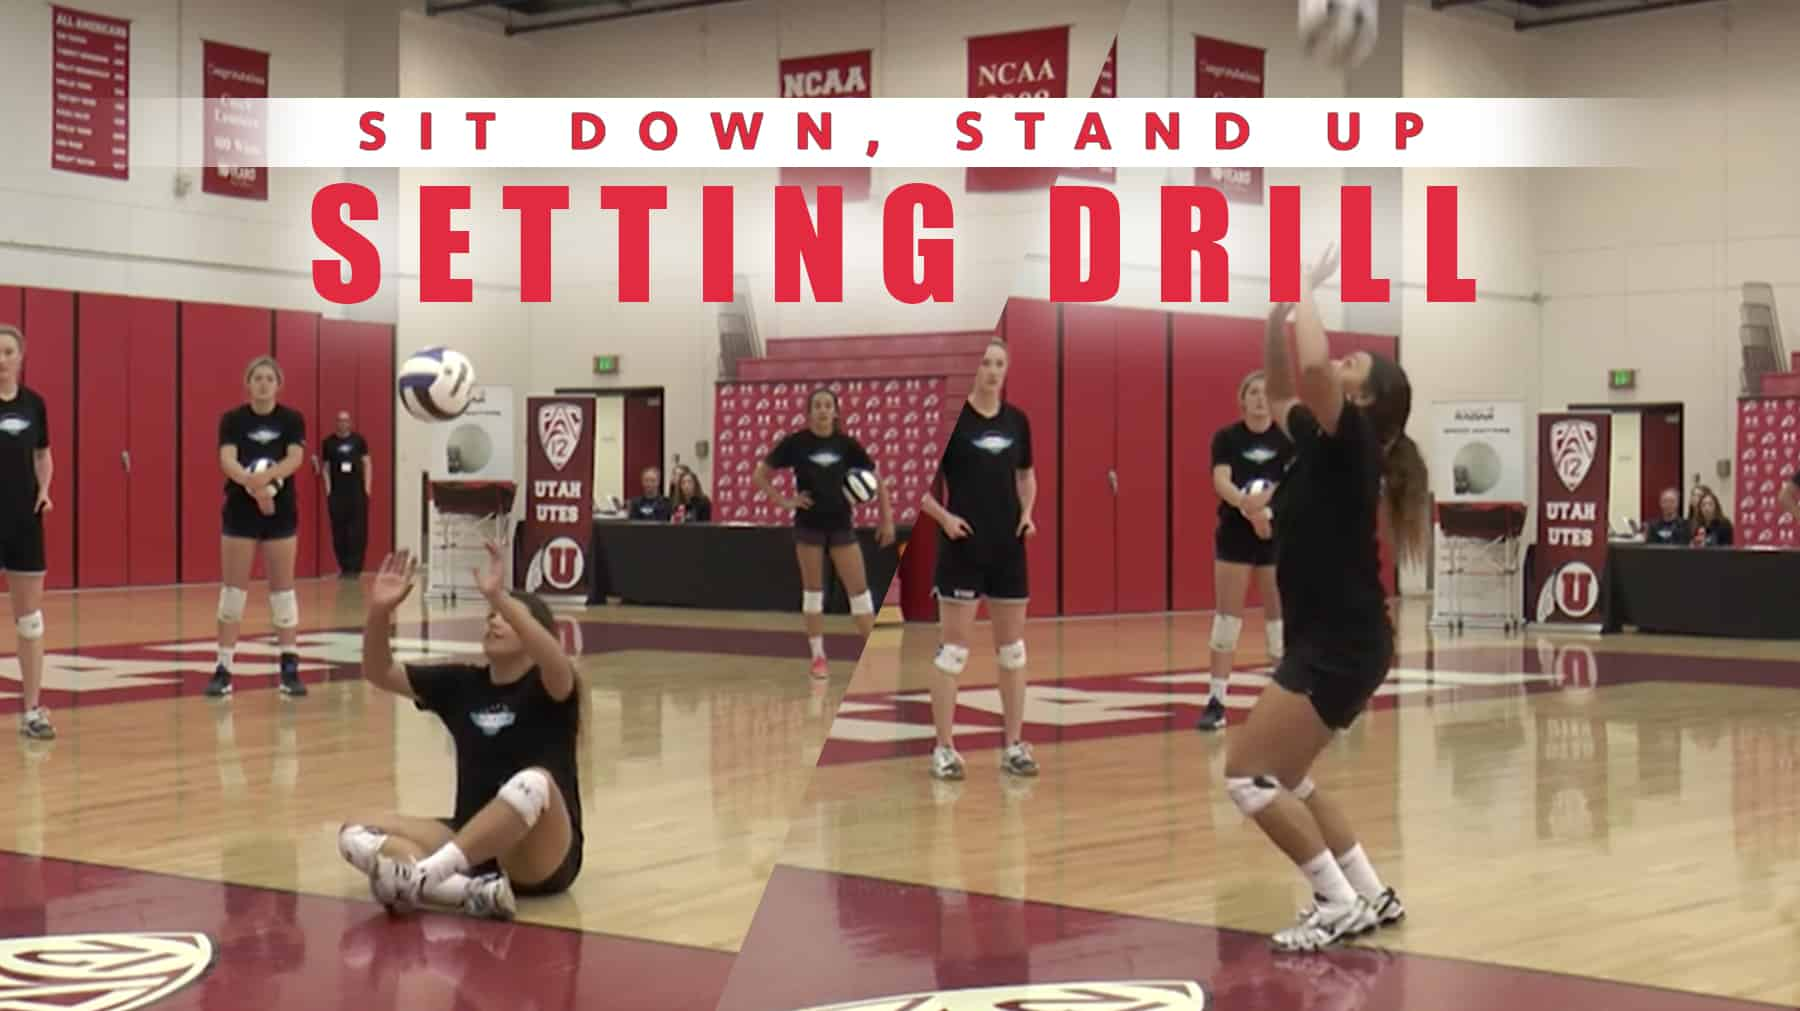 Sit Down Stand Up Setting Drill